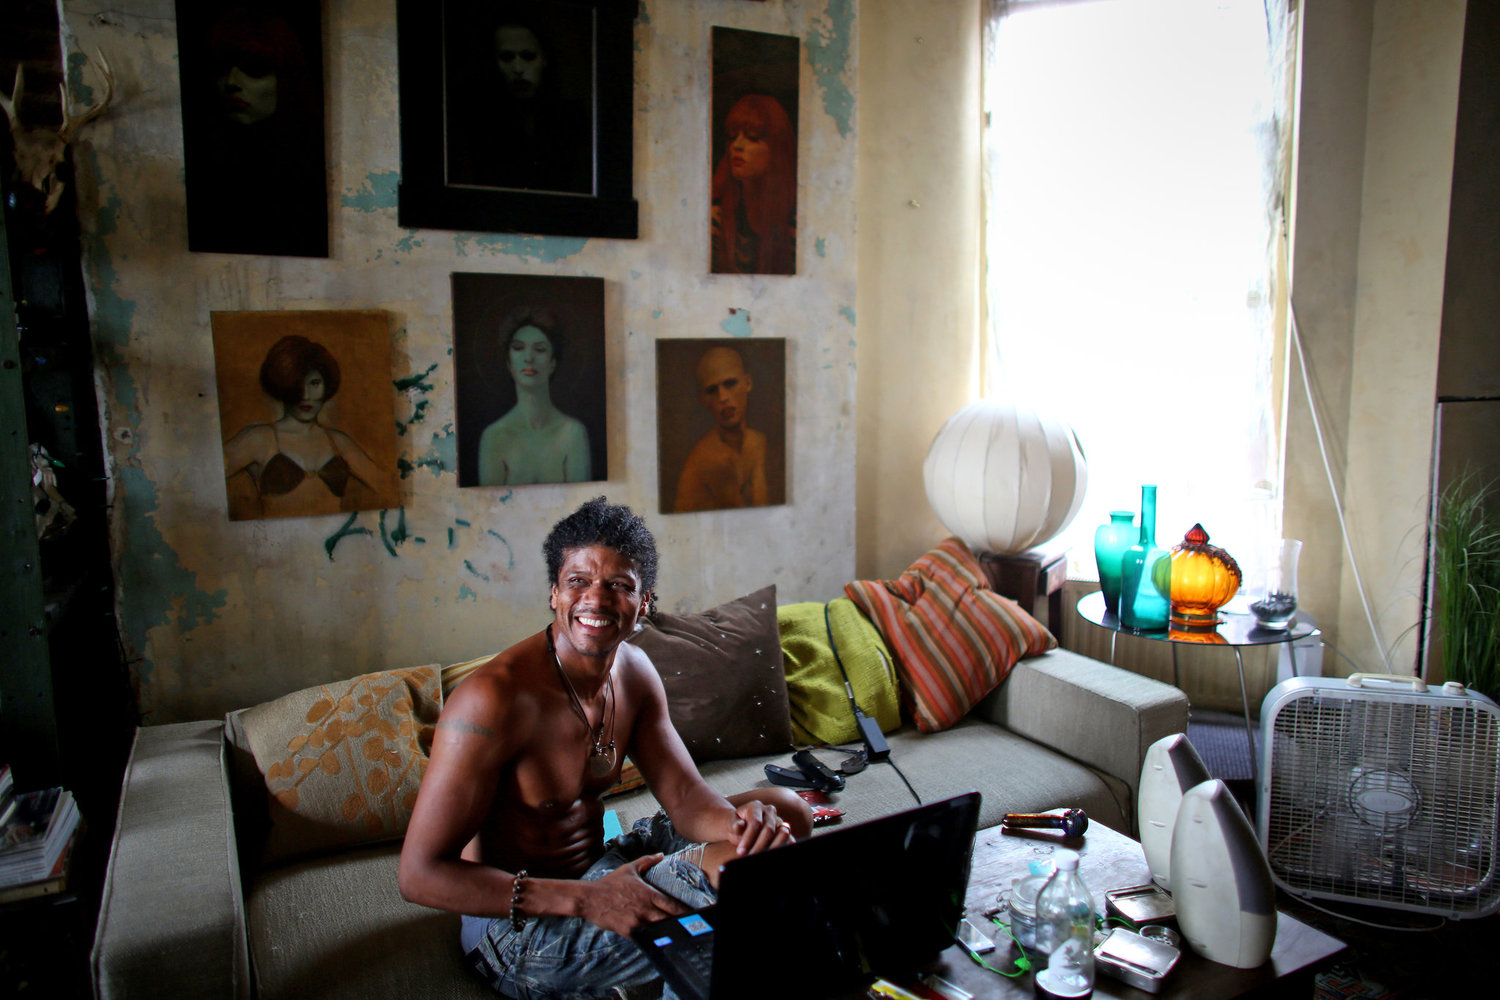 Jean Paul Chatham, originally from Belize, inside the apartment that he shares with Steven Ashmore, an original homesteader.